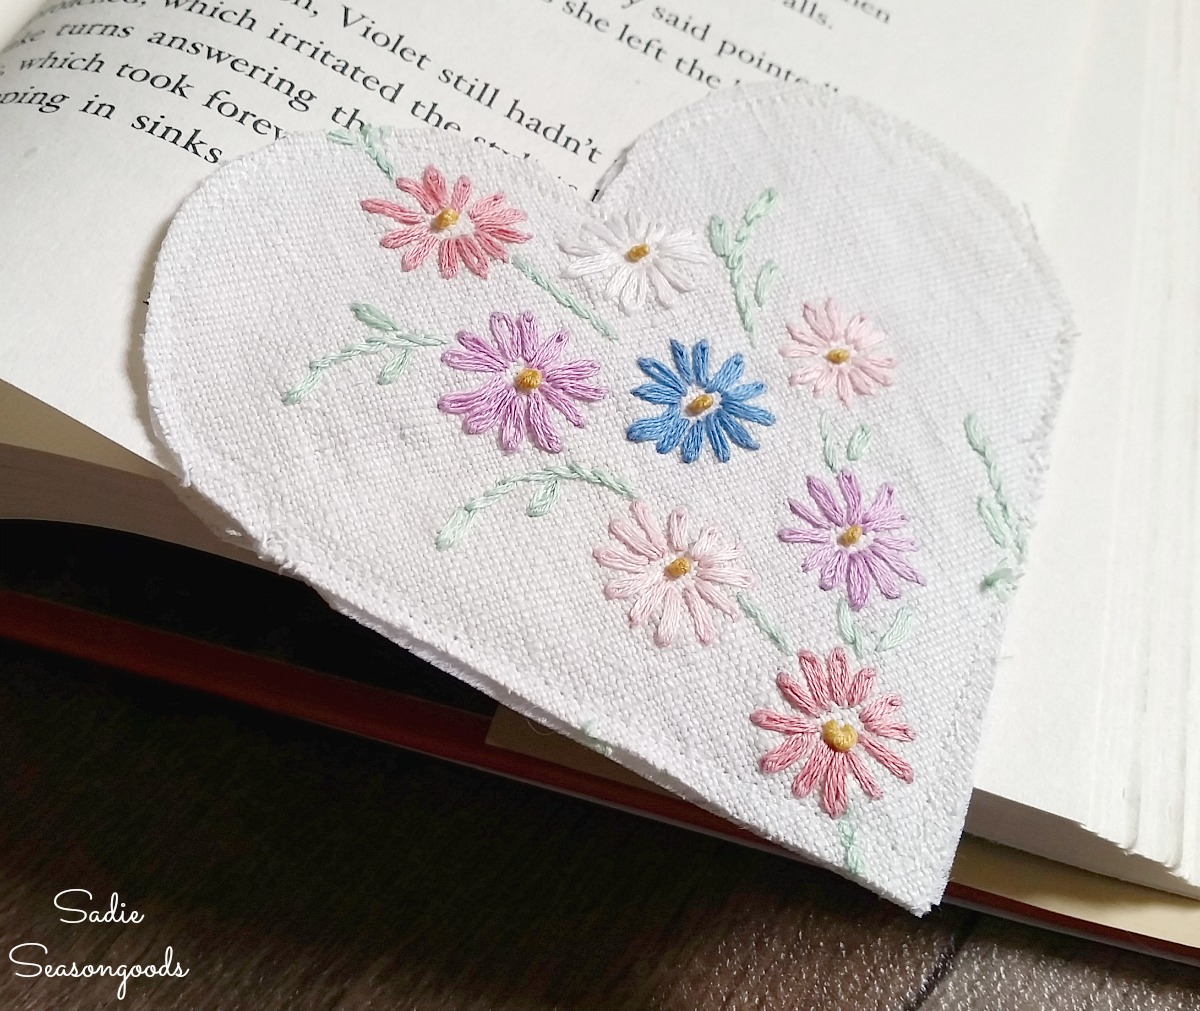 Vintage tablecloths and embroidered linens that are damaged with holes and upcycled into a bookmarker